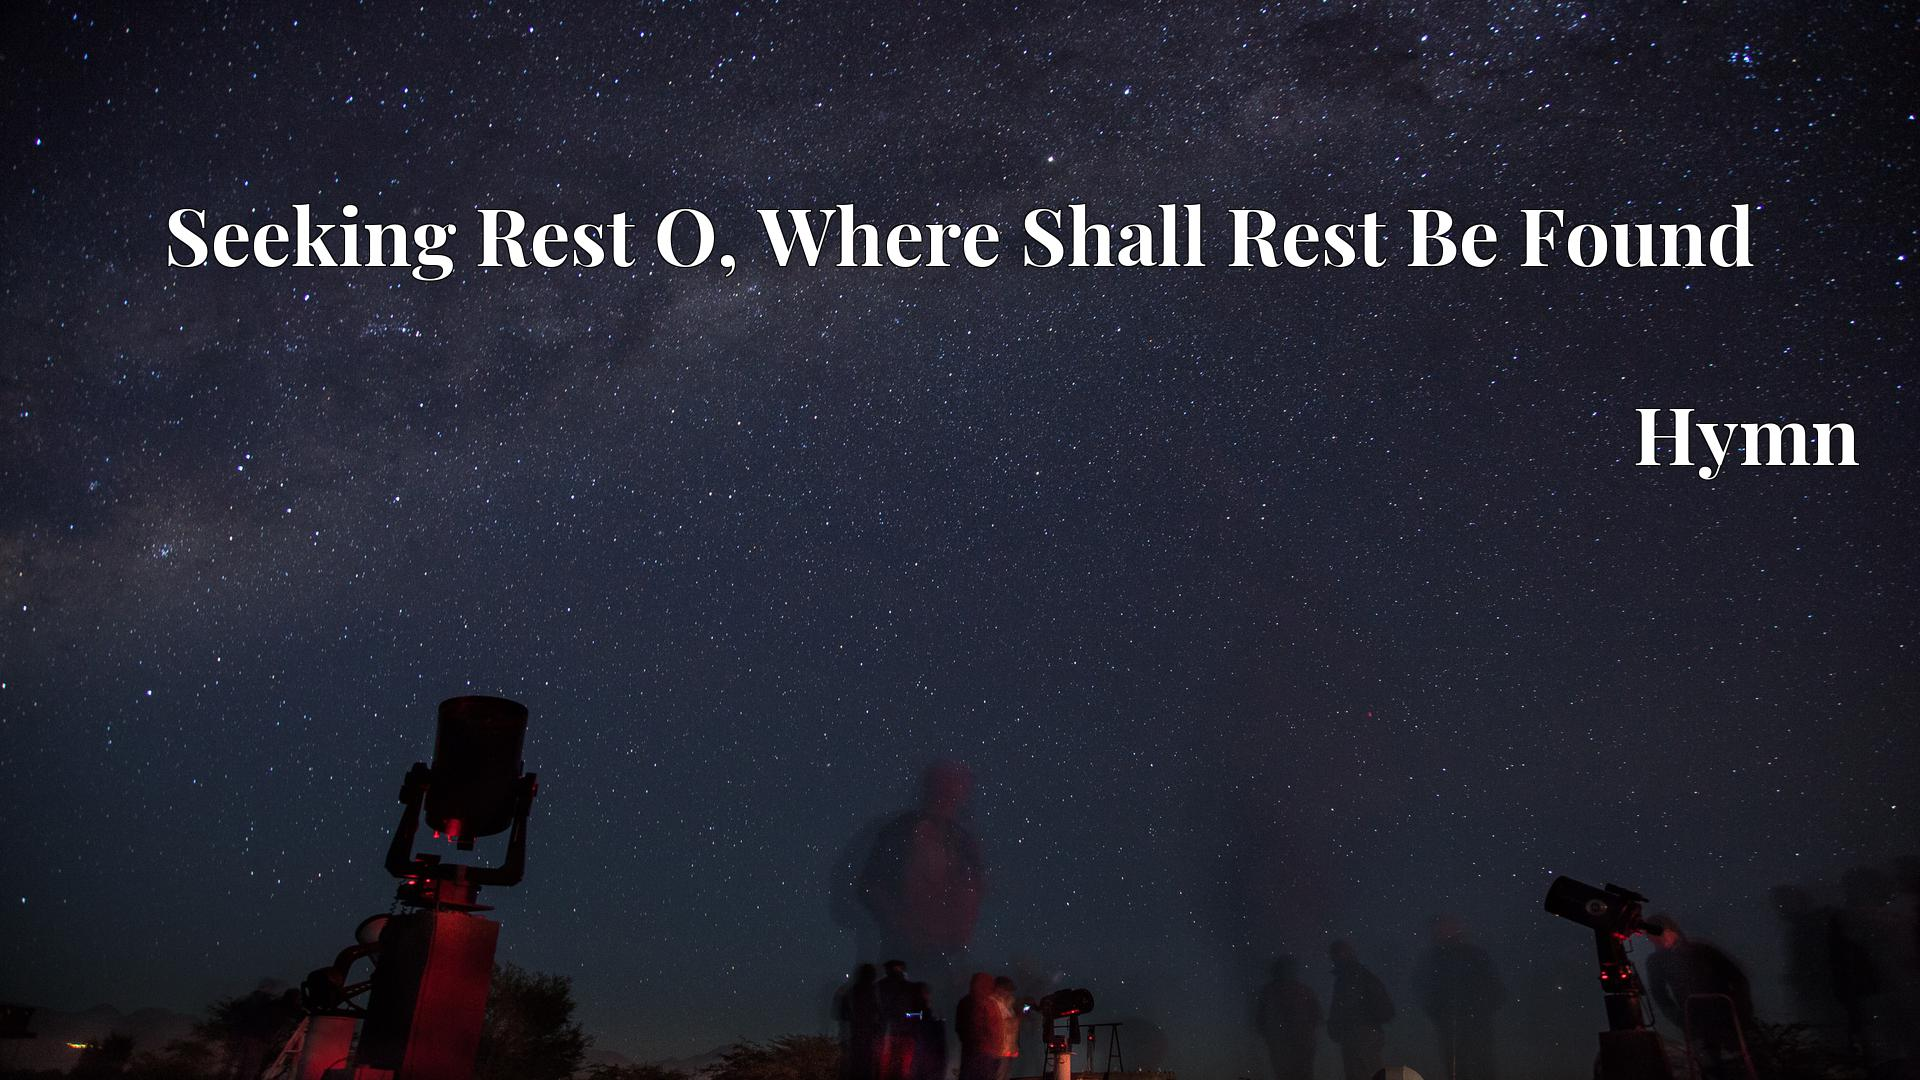 Seeking Rest O, Where Shall Rest Be Found - Hymn